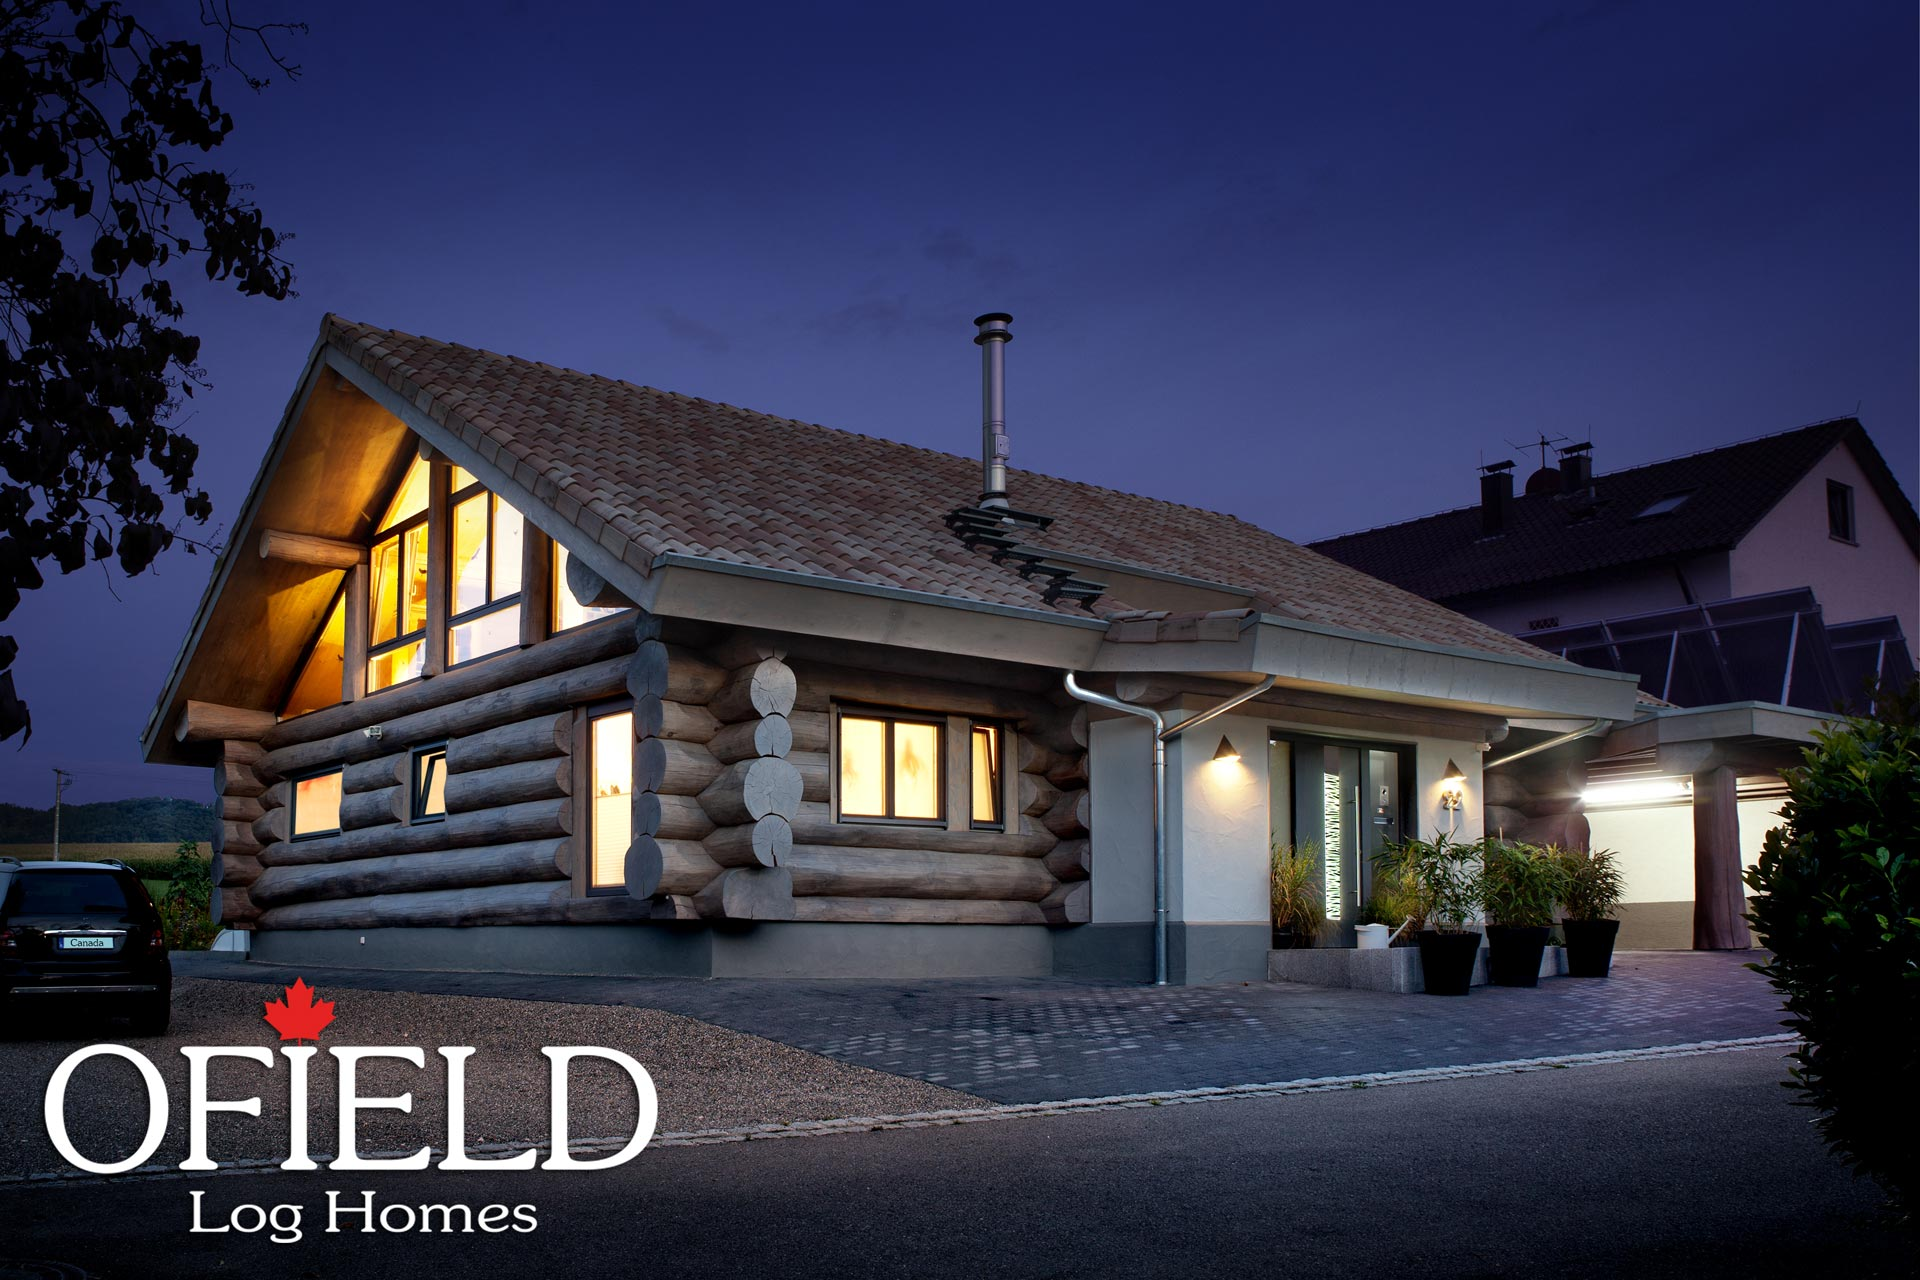 ofield log homes ein ofield haus in baden w rttemberg. Black Bedroom Furniture Sets. Home Design Ideas